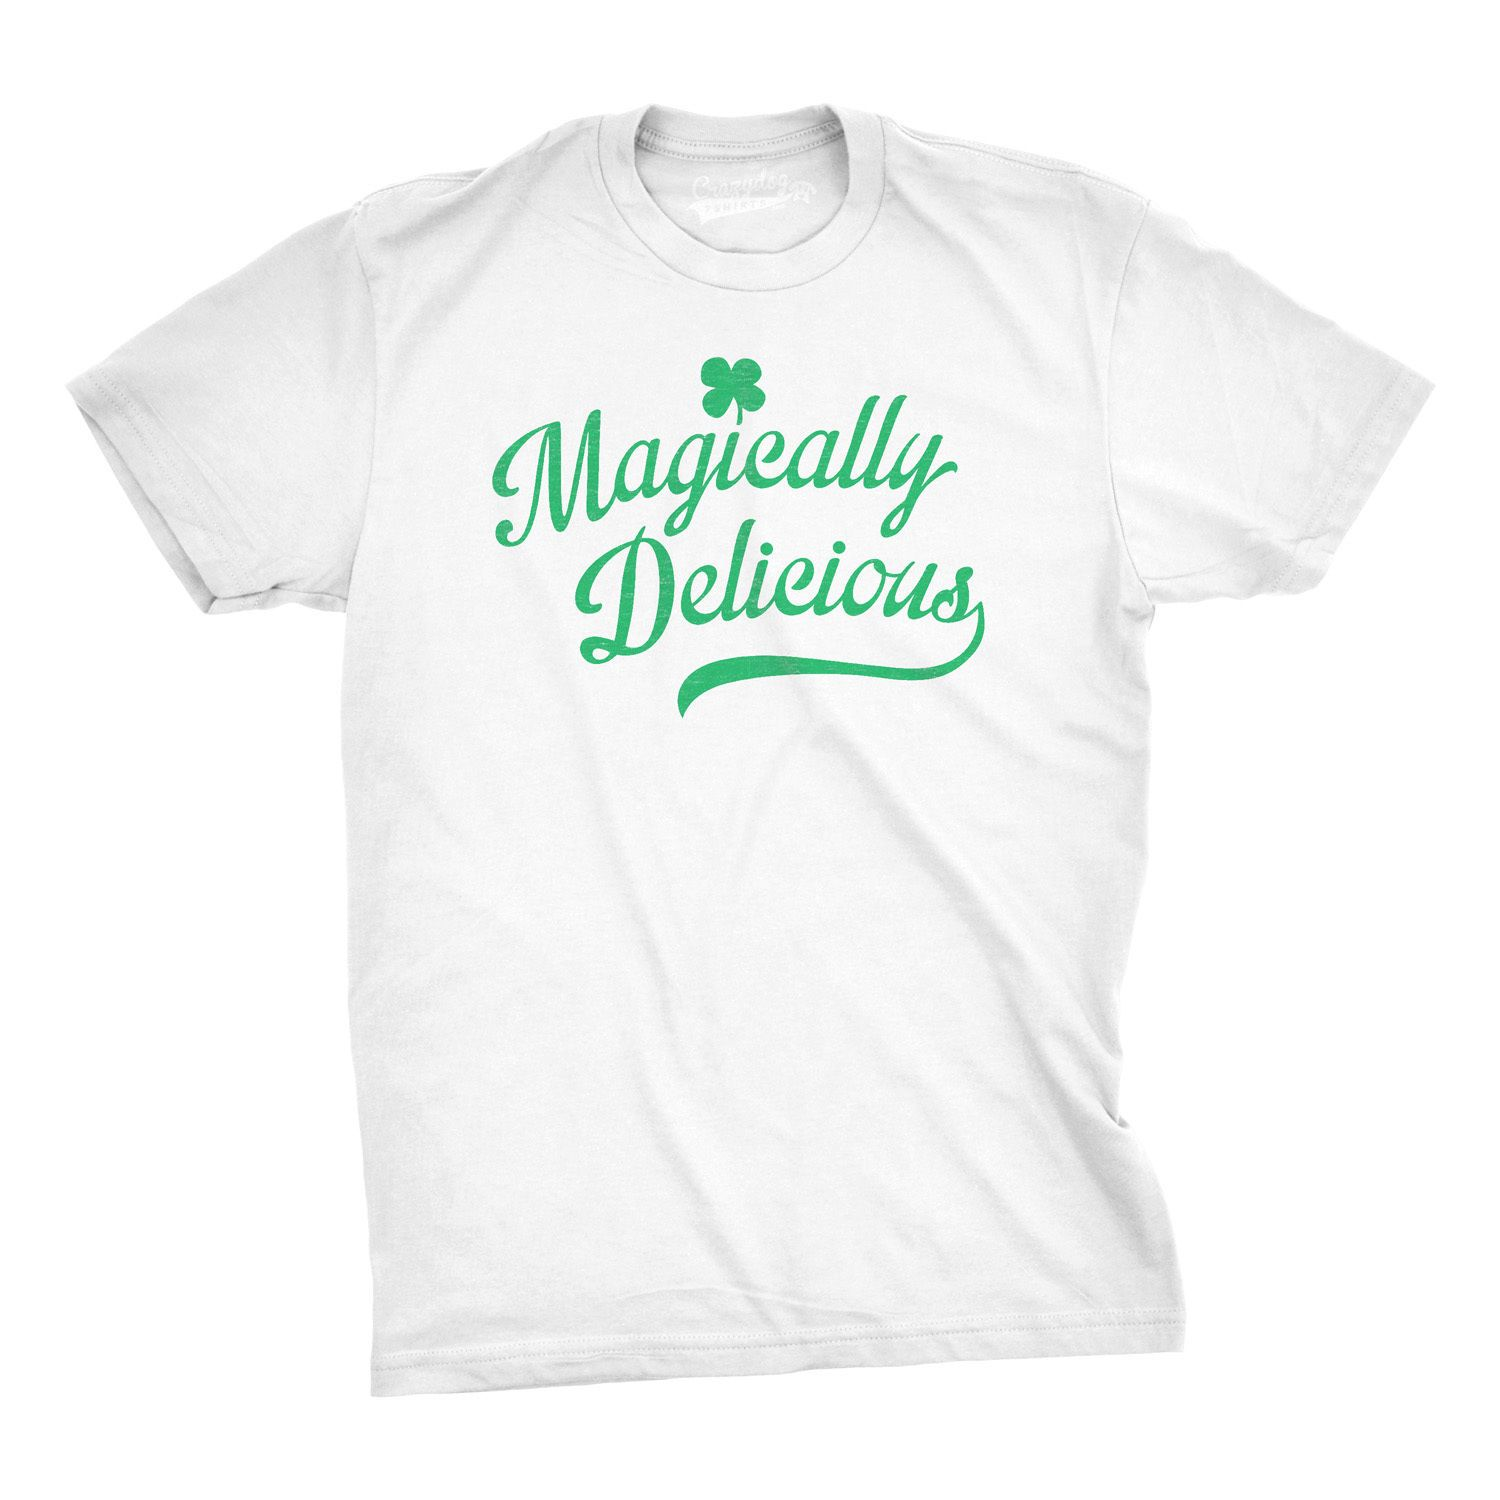 Mens Magically Delicious Funny St Patricks Day Irish T Shirt (White) Chinese Style Low Price Round Neck Men Tees T-shirt